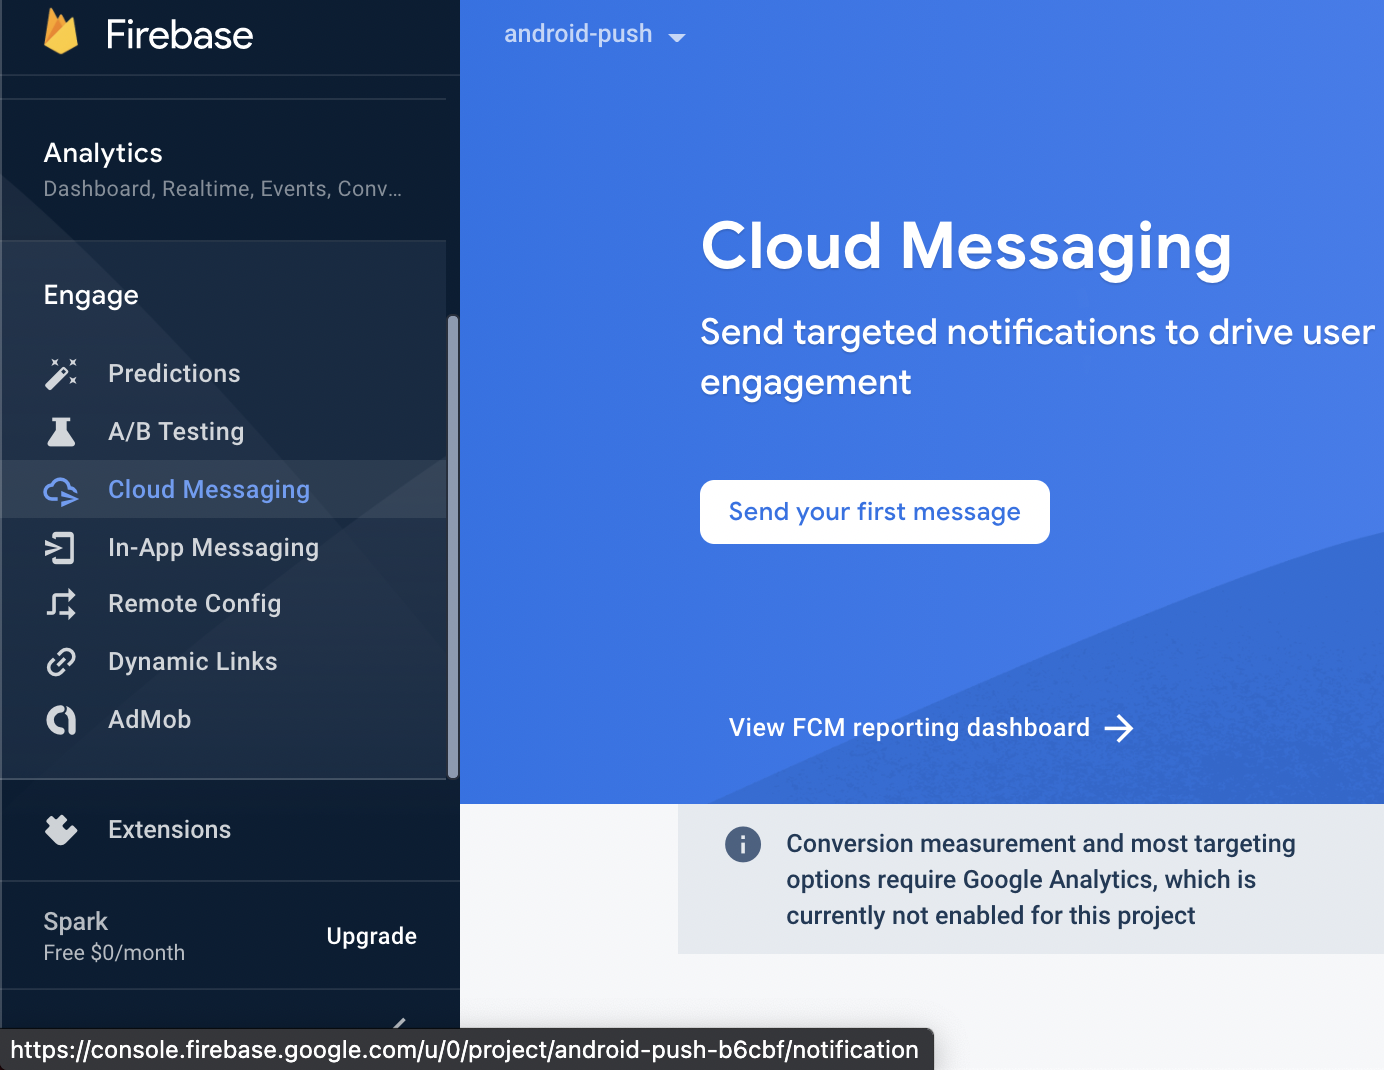 Send your first push notification